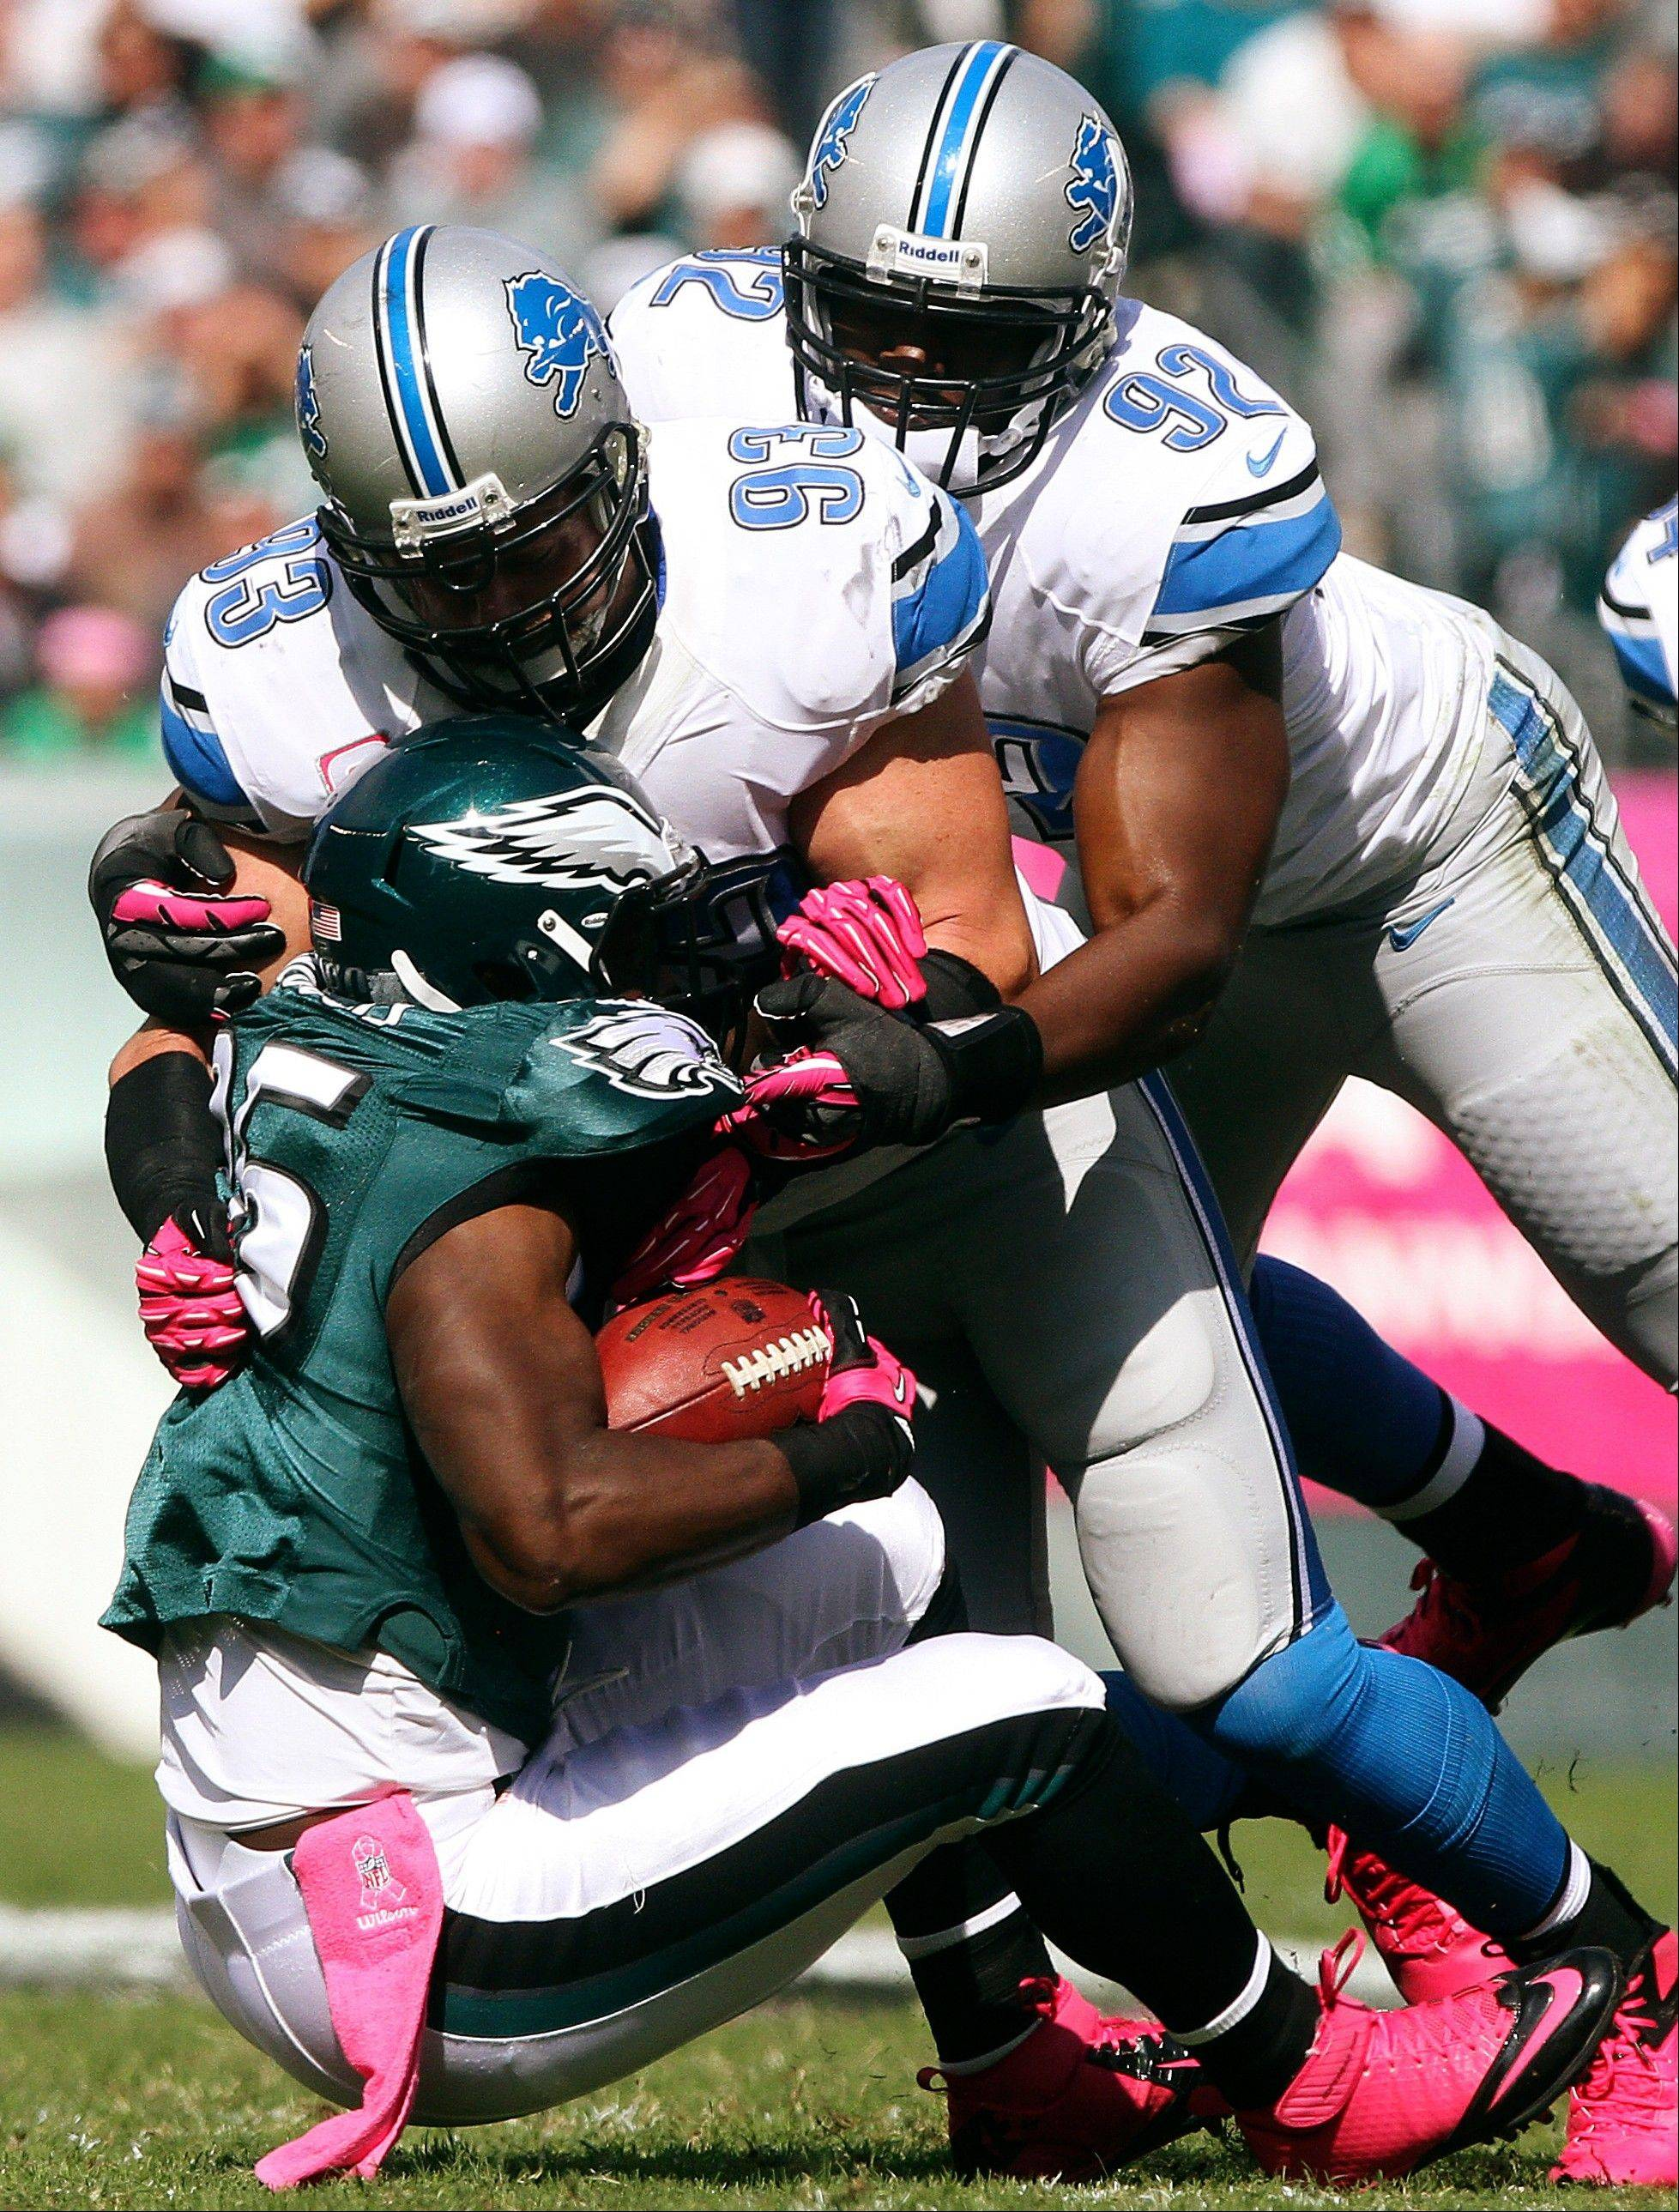 Eagles running back LeSean McCoy is tackled by Detroit Lions defensive linemen Kyle Vanden Bosch (93) and Cliff Avril last week. Avril leads the Lions with 3.5 sacks.